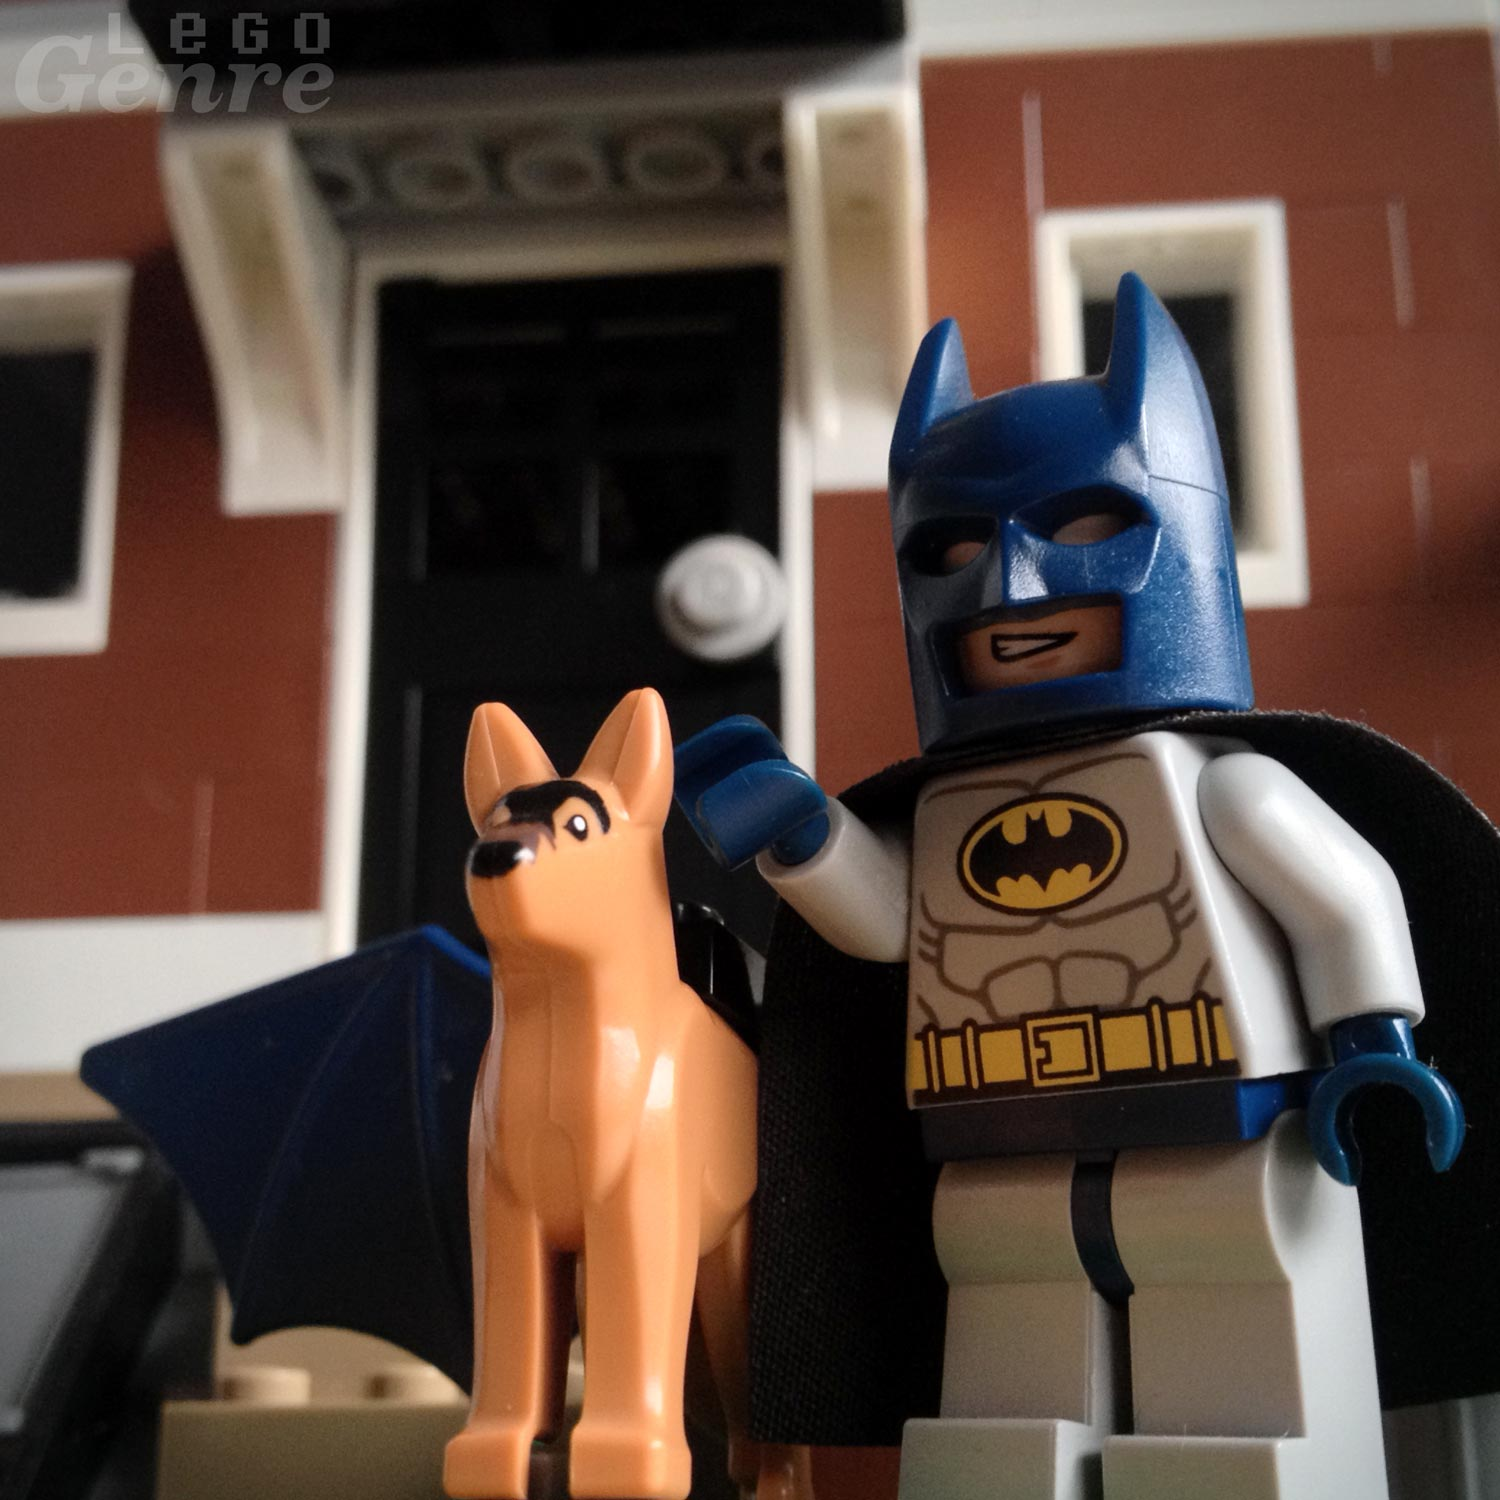 LegoGenre 00361: Batman and Ace